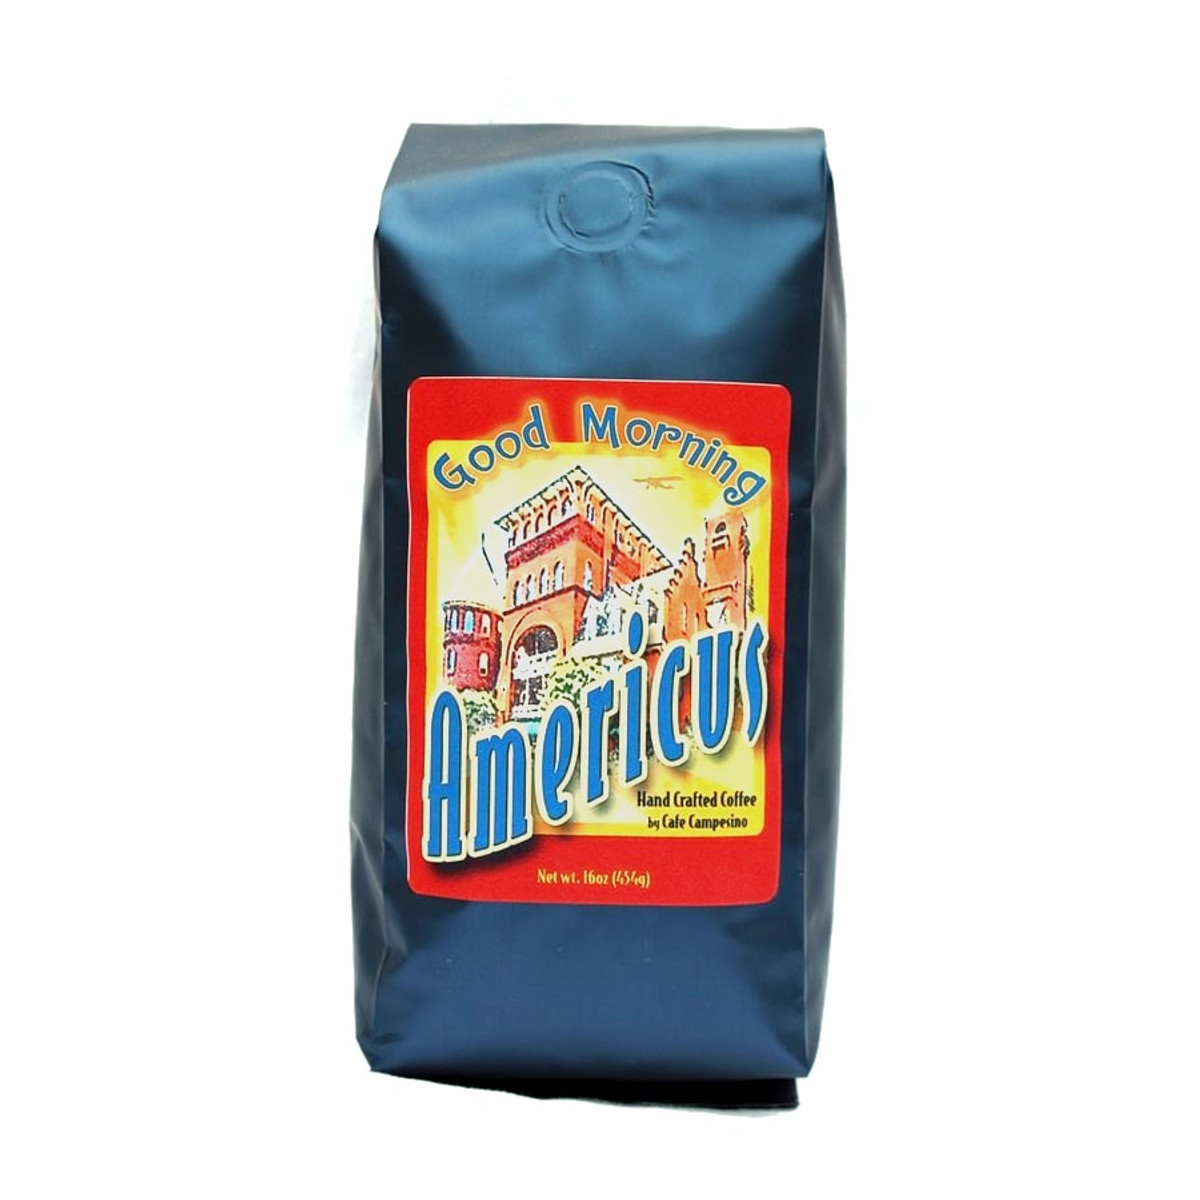 This delightful breakfast blend combines fair trade, organic coffees from Latin America and Indonesia. It is medium-bodied with a sweet, fruity fragrance, and is a great first cup of the day. The blend is complemented by a beautifully designed label depicting the historic Windsor Hotel.